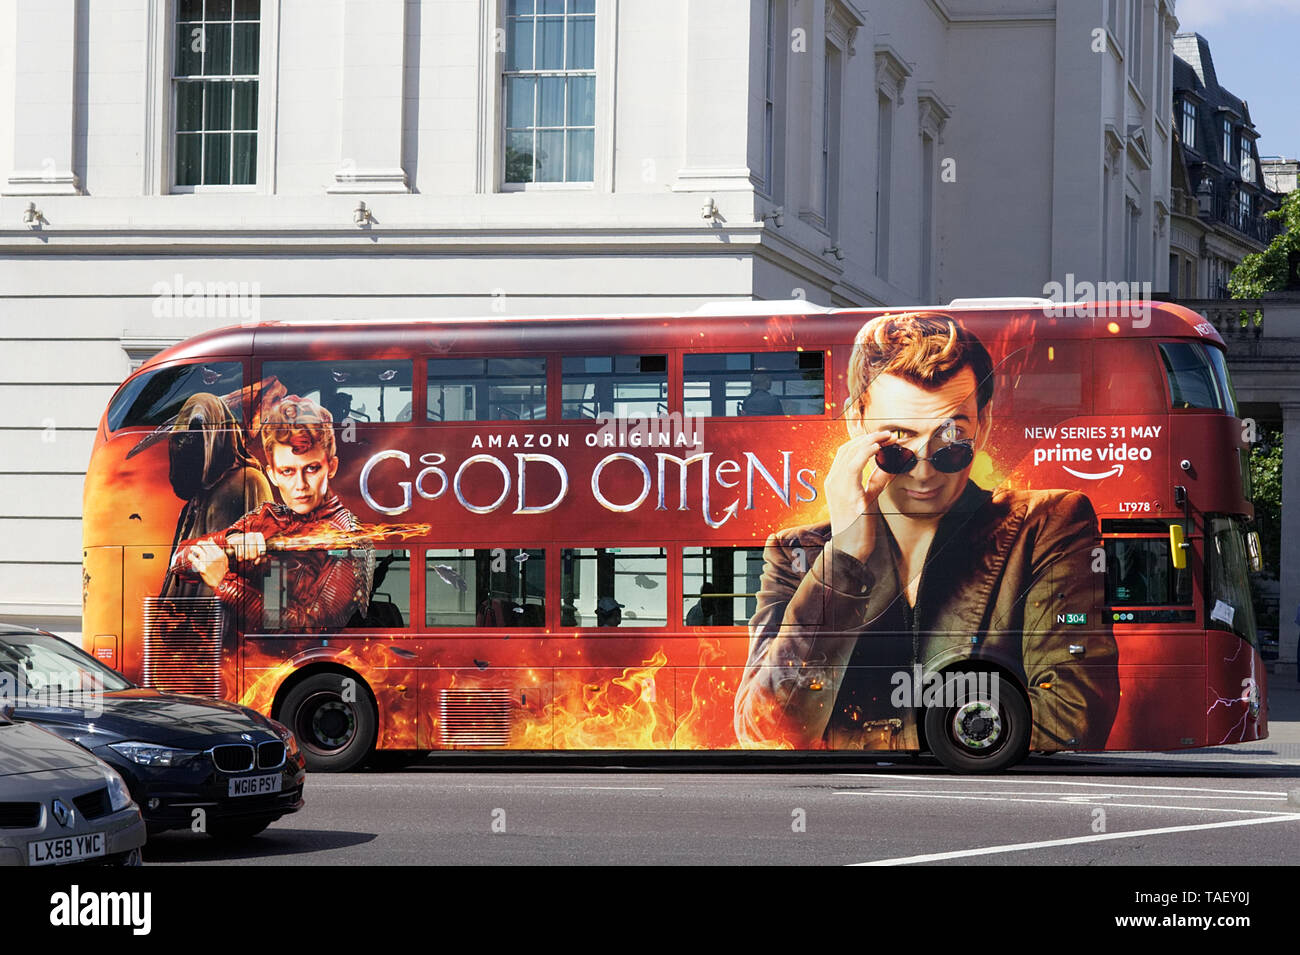 Good Omens advertised on a London Bus - Stock Image